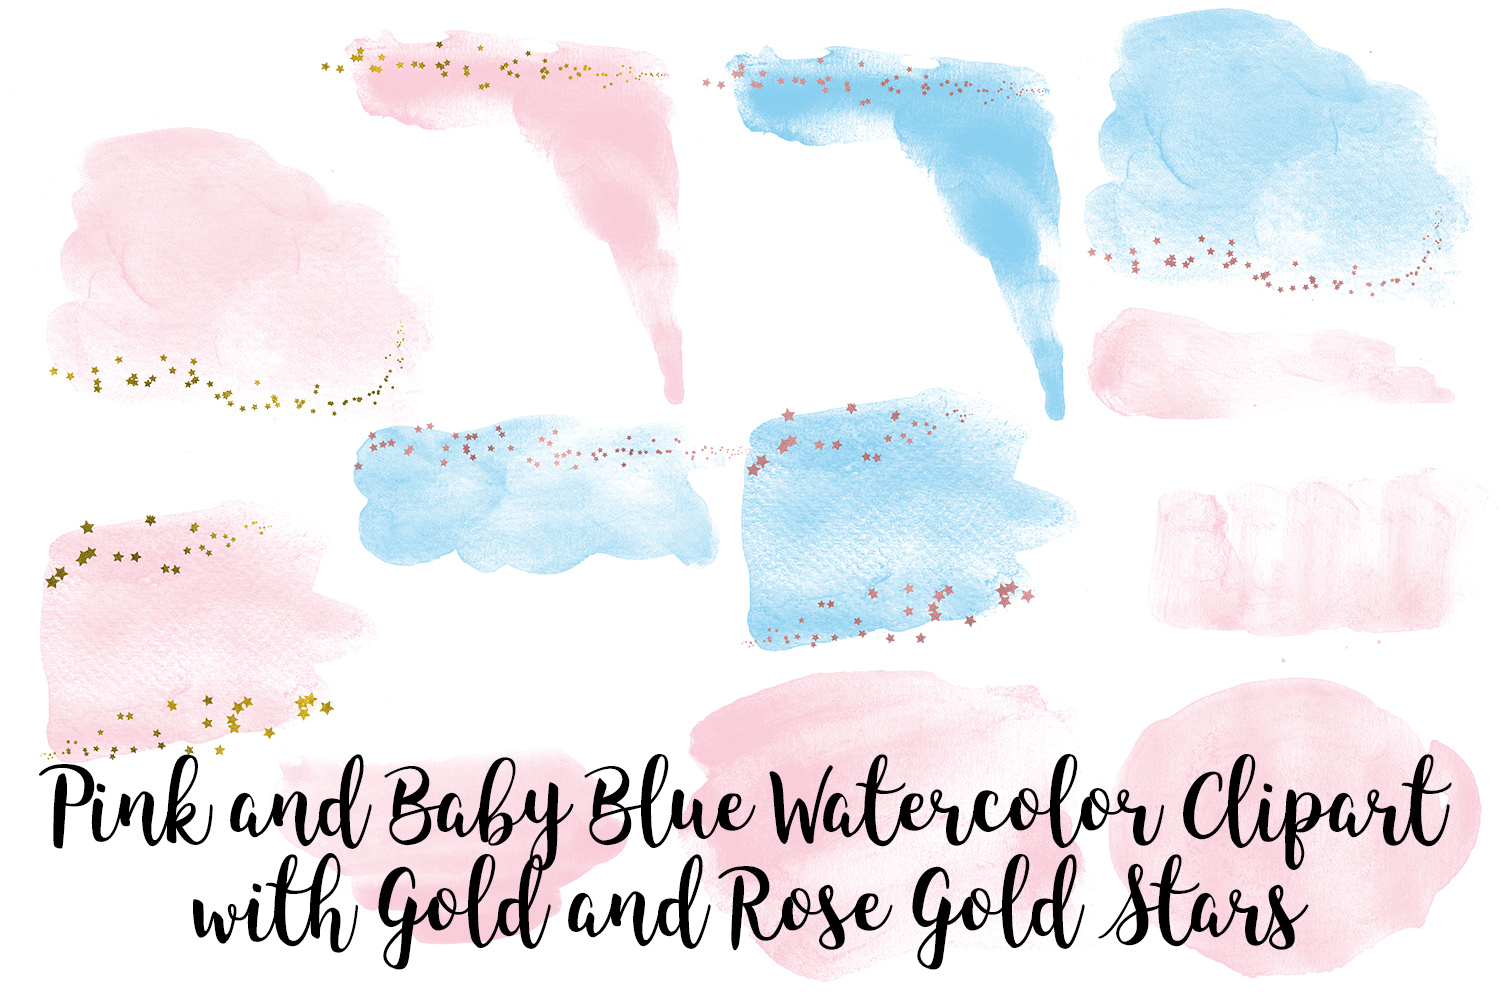 Pink and Baby Blue Watercolor Clip Art, Gold and Rose Gold example image 2